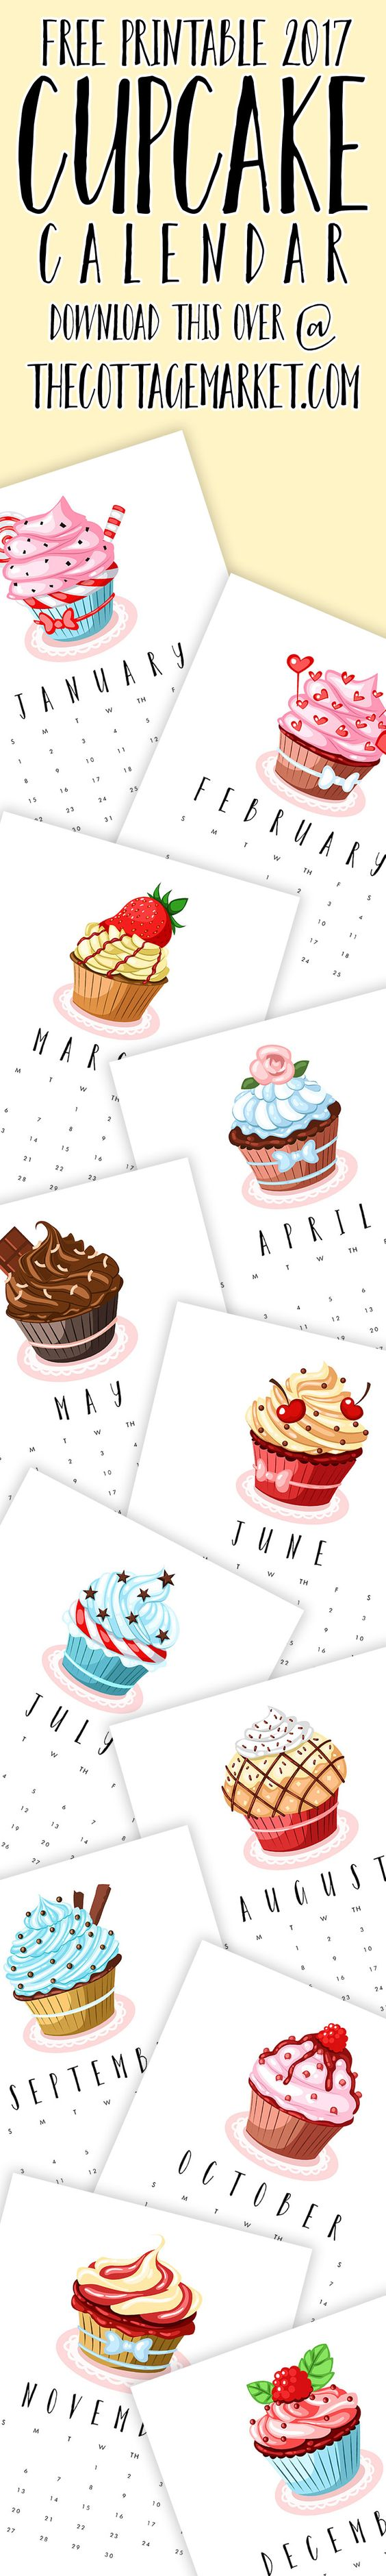 Free Printable 2017 Cupcake Calendar...Come and Celebrate Baking Week!: